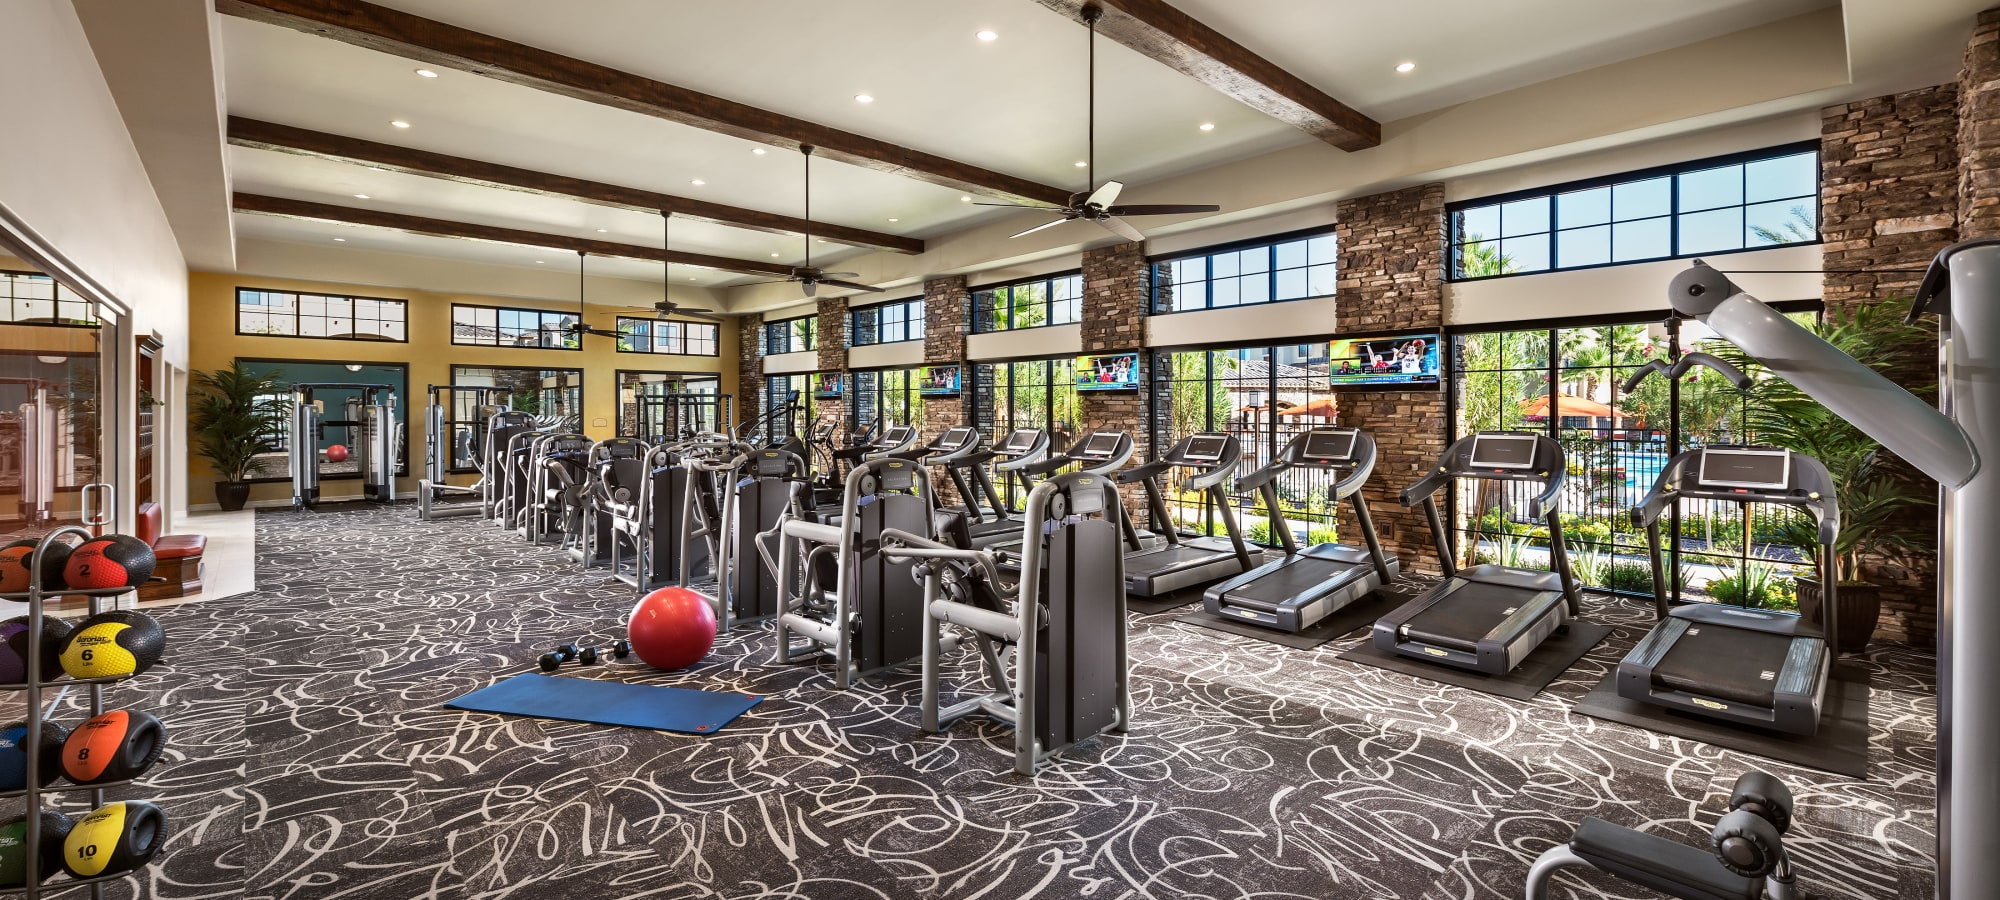 Fully equipped fitness center at San Milan in Phoenix, Arizona